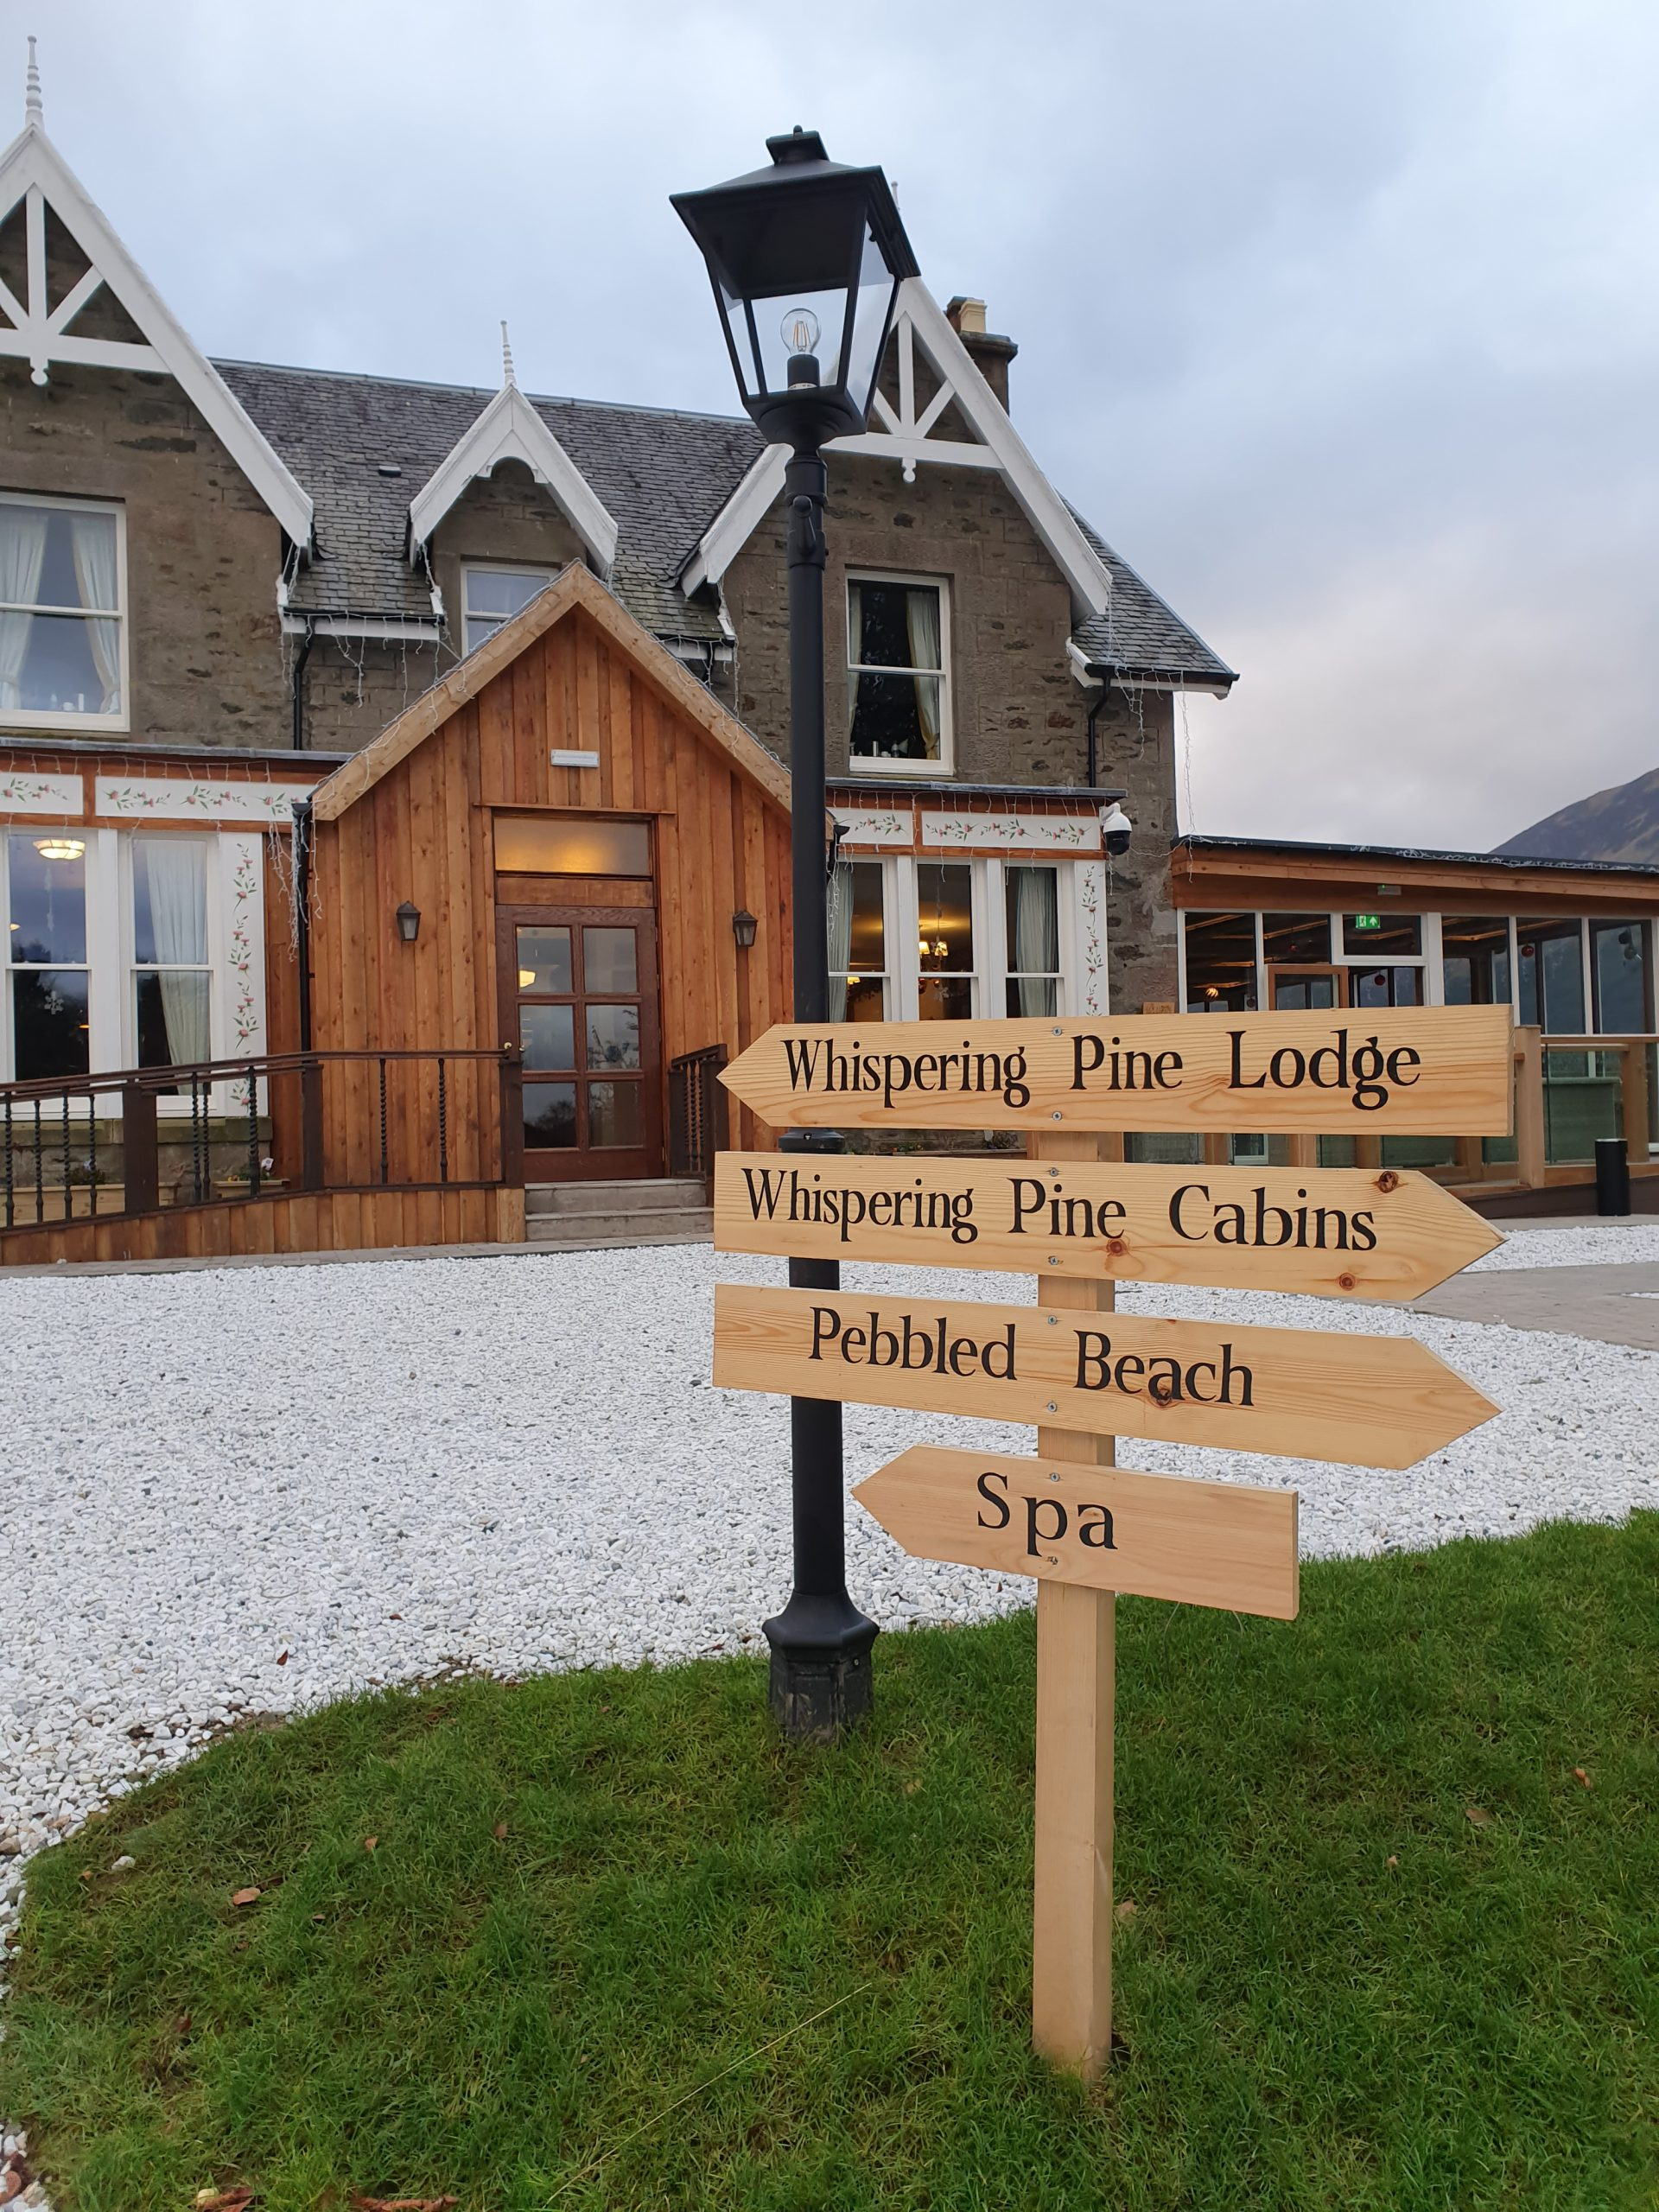 Whispering Pine Lodge near Fort William, Scotland